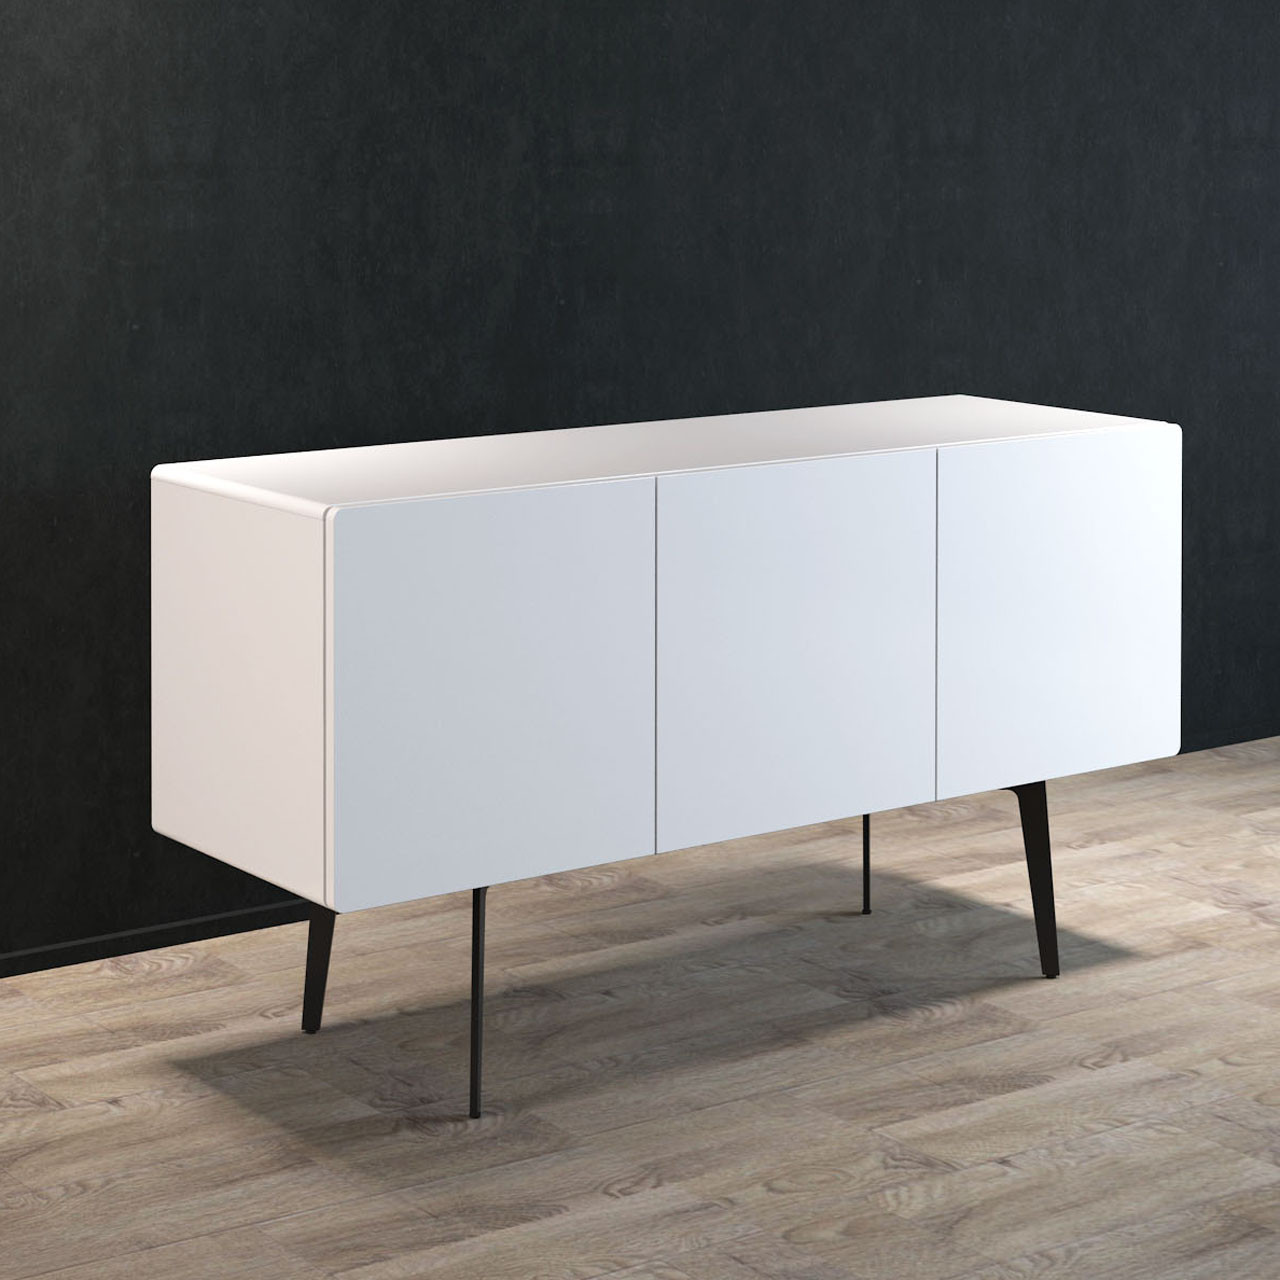 Brando Sideboard 150cm Cityside Furniture